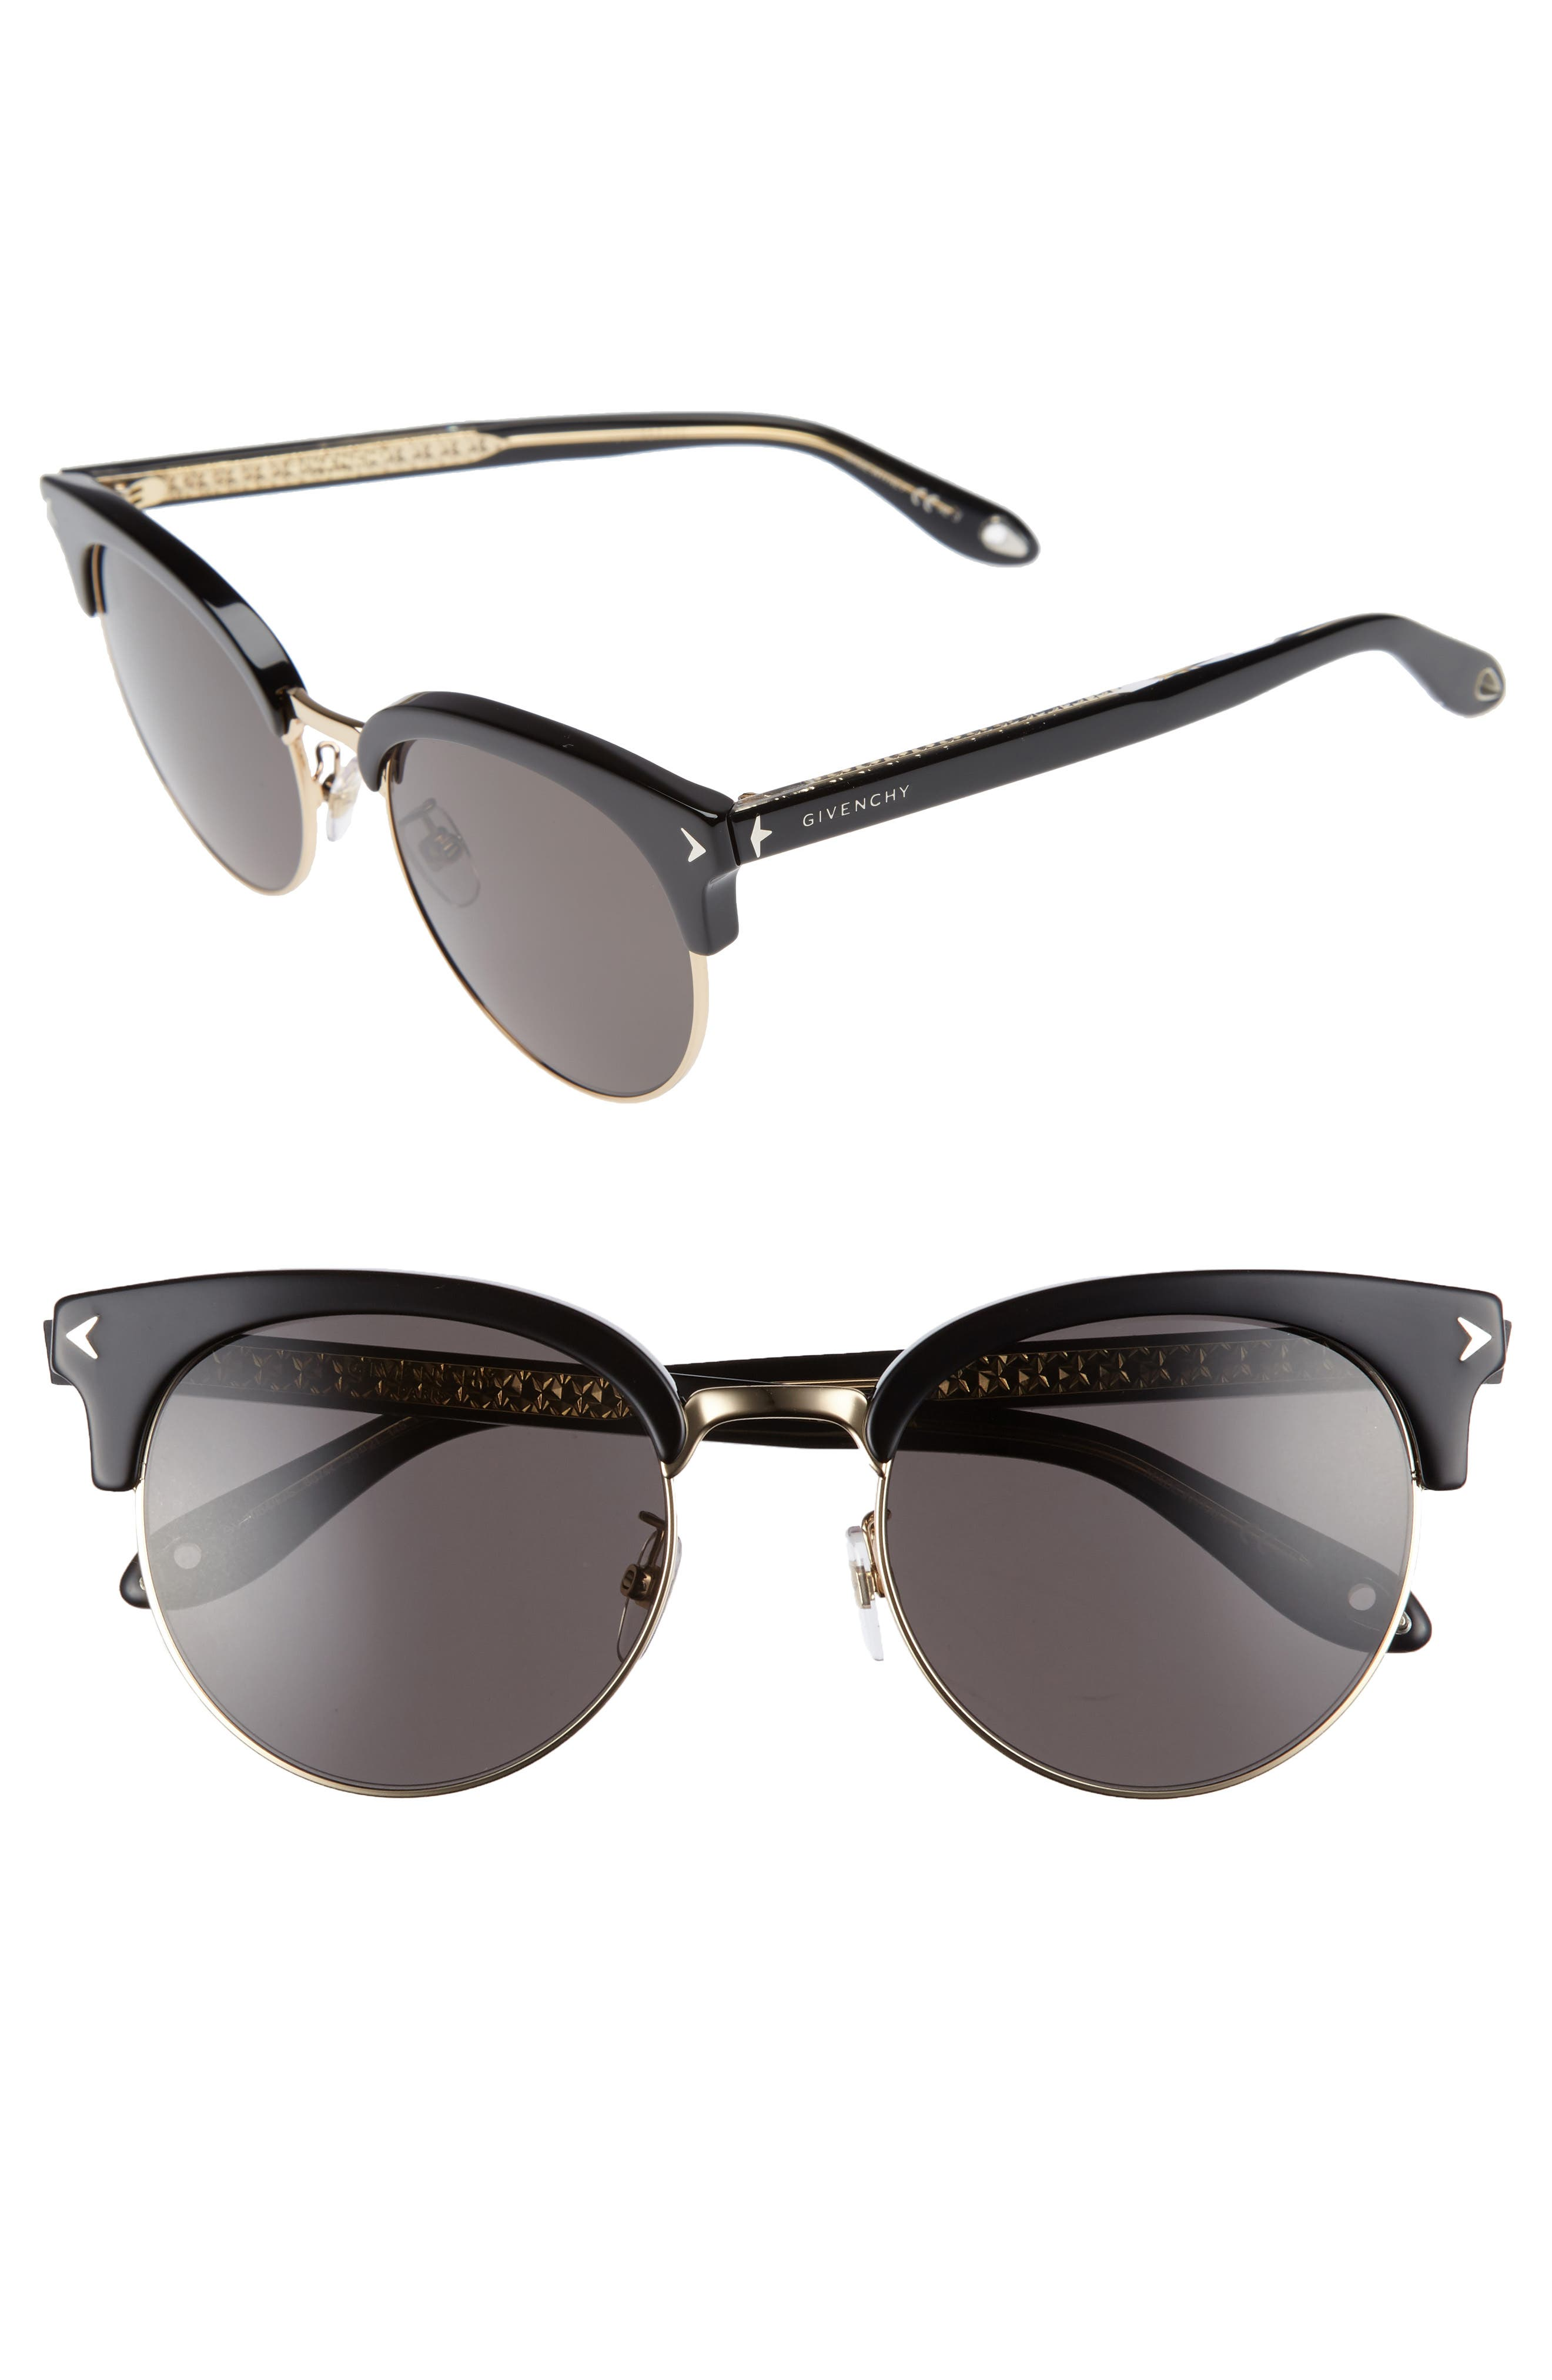 Alternate Image 1 Selected - Givenchy 55mm Sunglasses